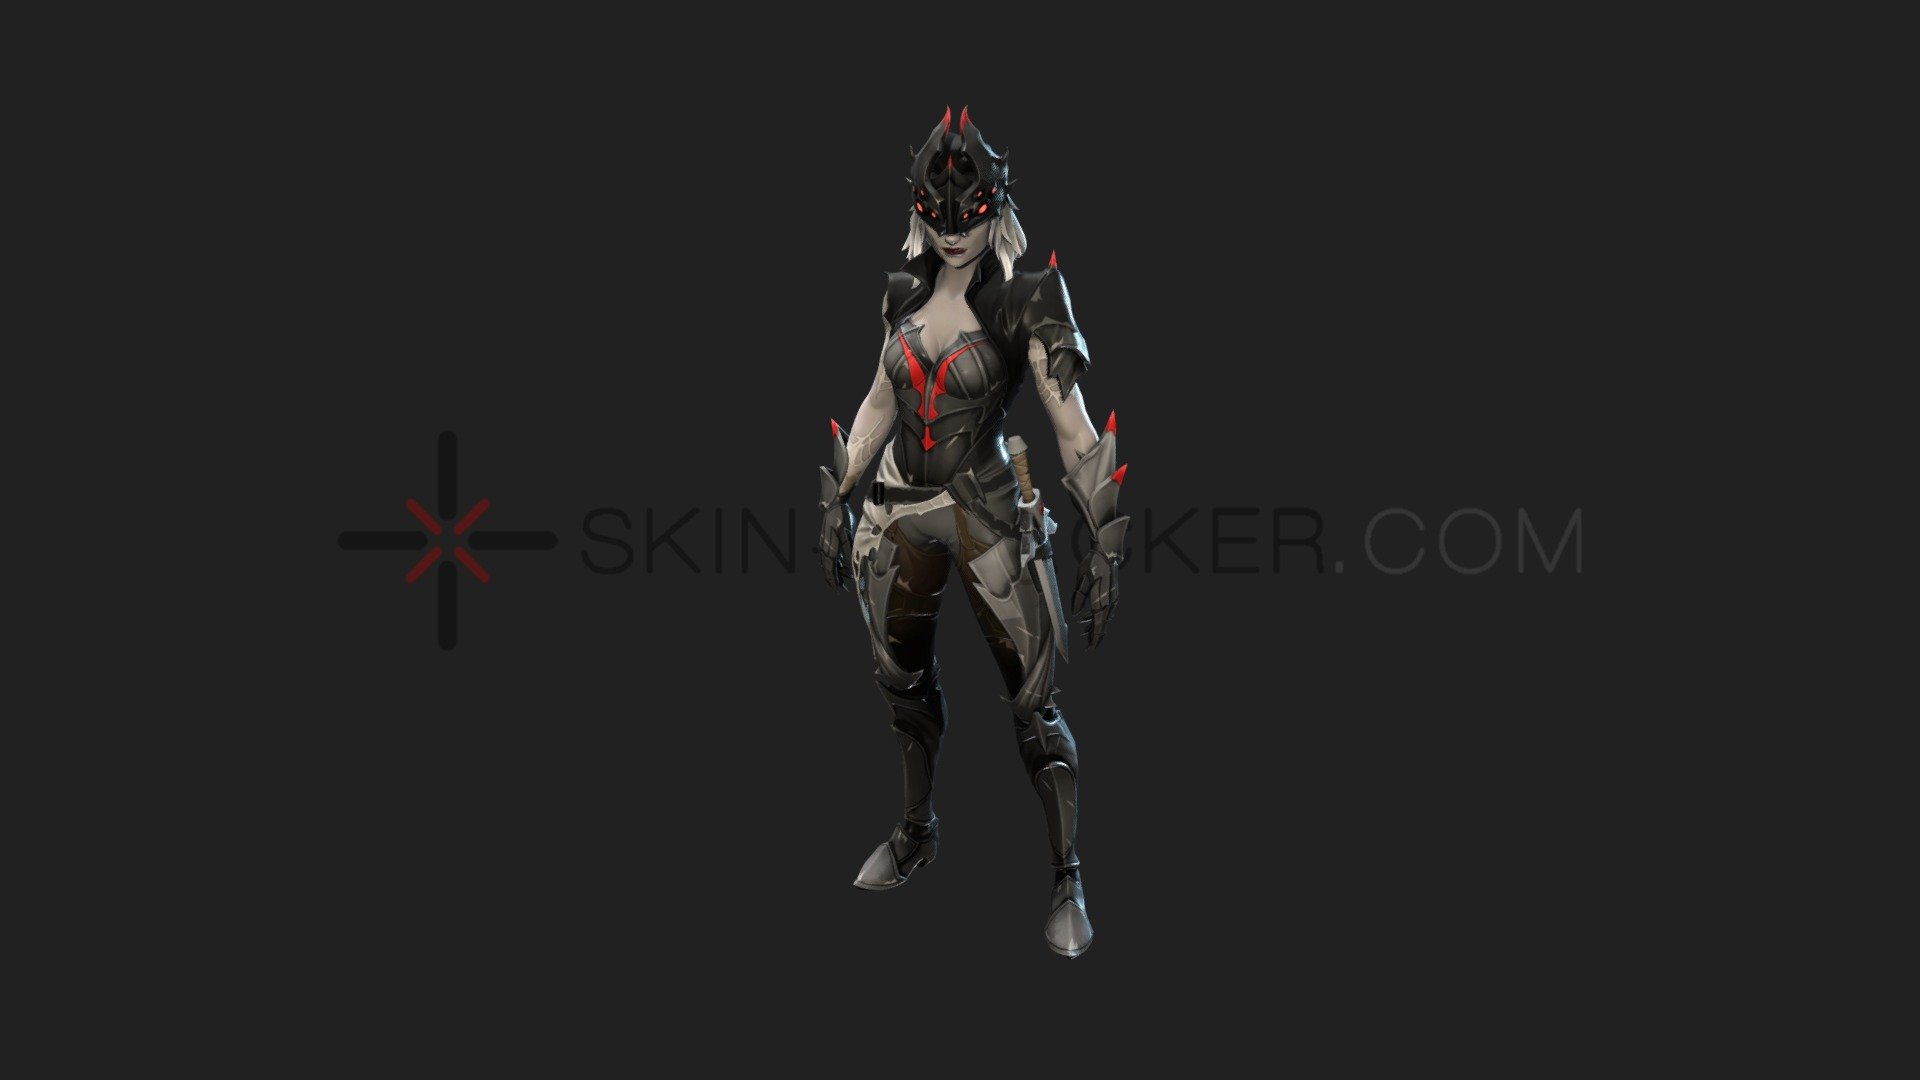 Fortnite   Arachne   3D model by Skin Tracker stairwave   Sketchfab 1920x1080